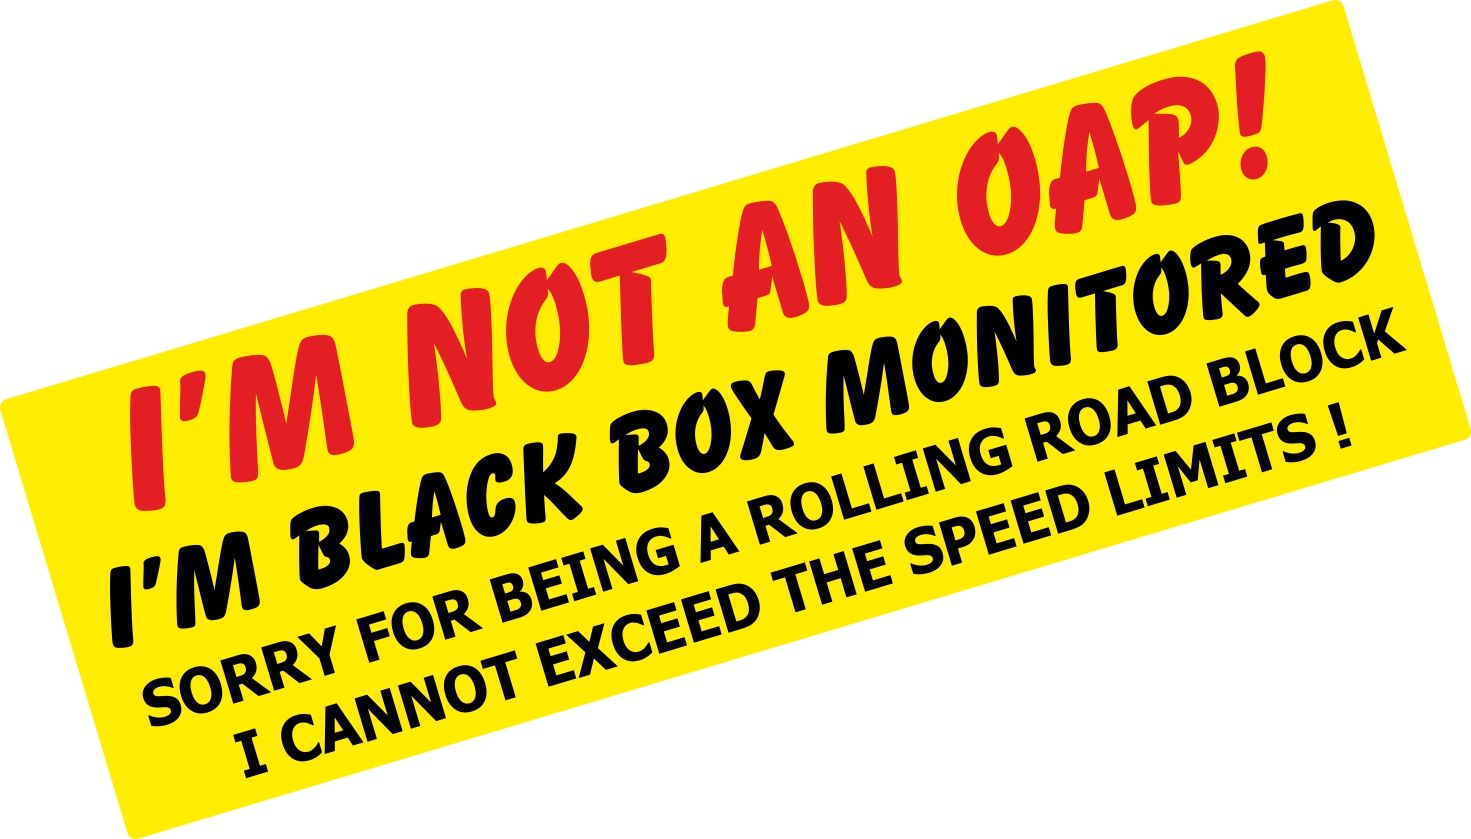 Car sticker design black - I M Not An Oap I M Black Box Monitored Warning Funny Design For Young Driver Car Sticker Decal 180x60mm